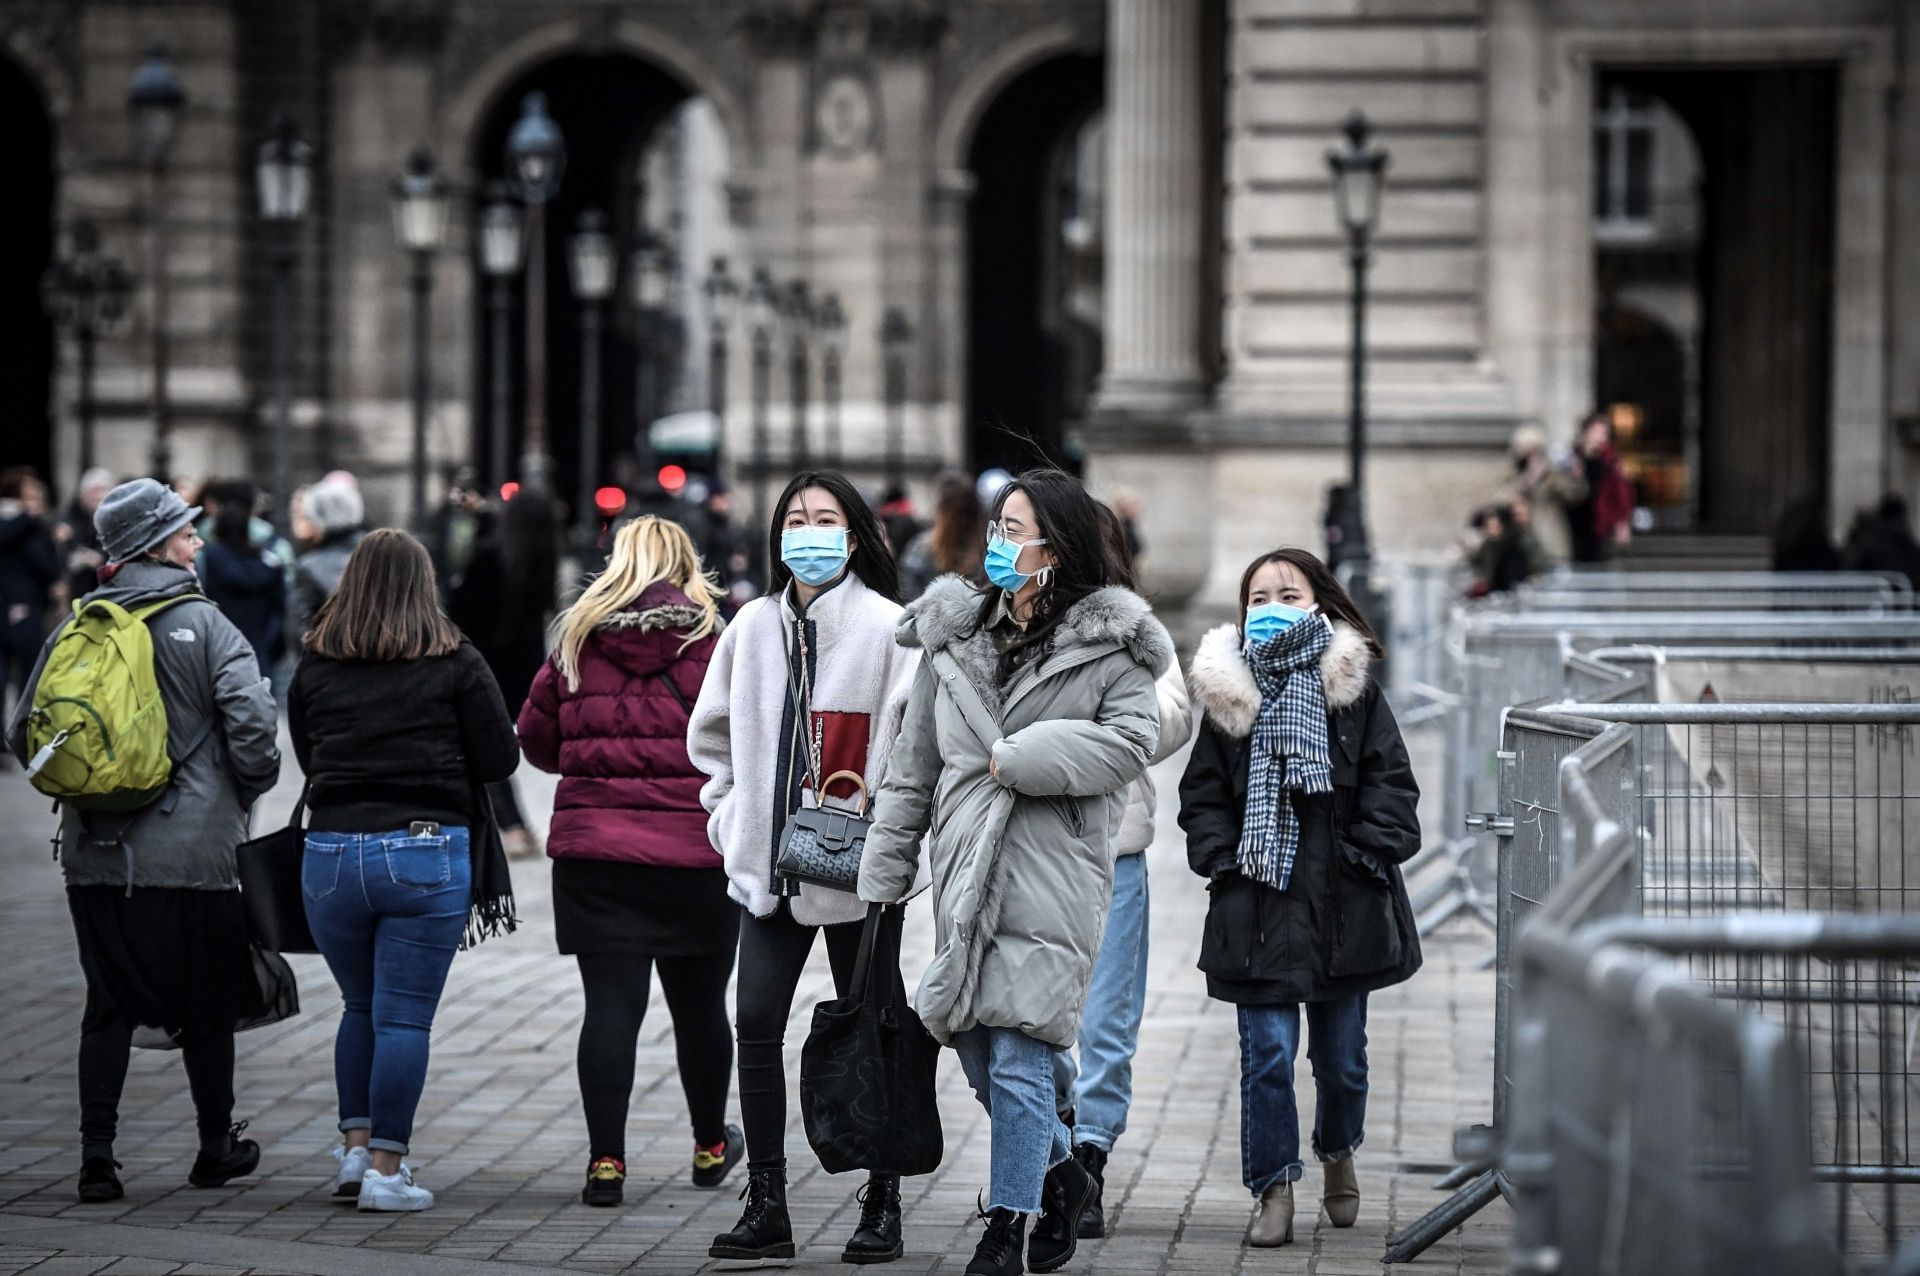 Tourists wearing a protective face mask amid fears of the spread of the covid-19 coronavirus at the Pyramide du louvre area in Paris. (Image: Stephane De Sakutin/AFP)